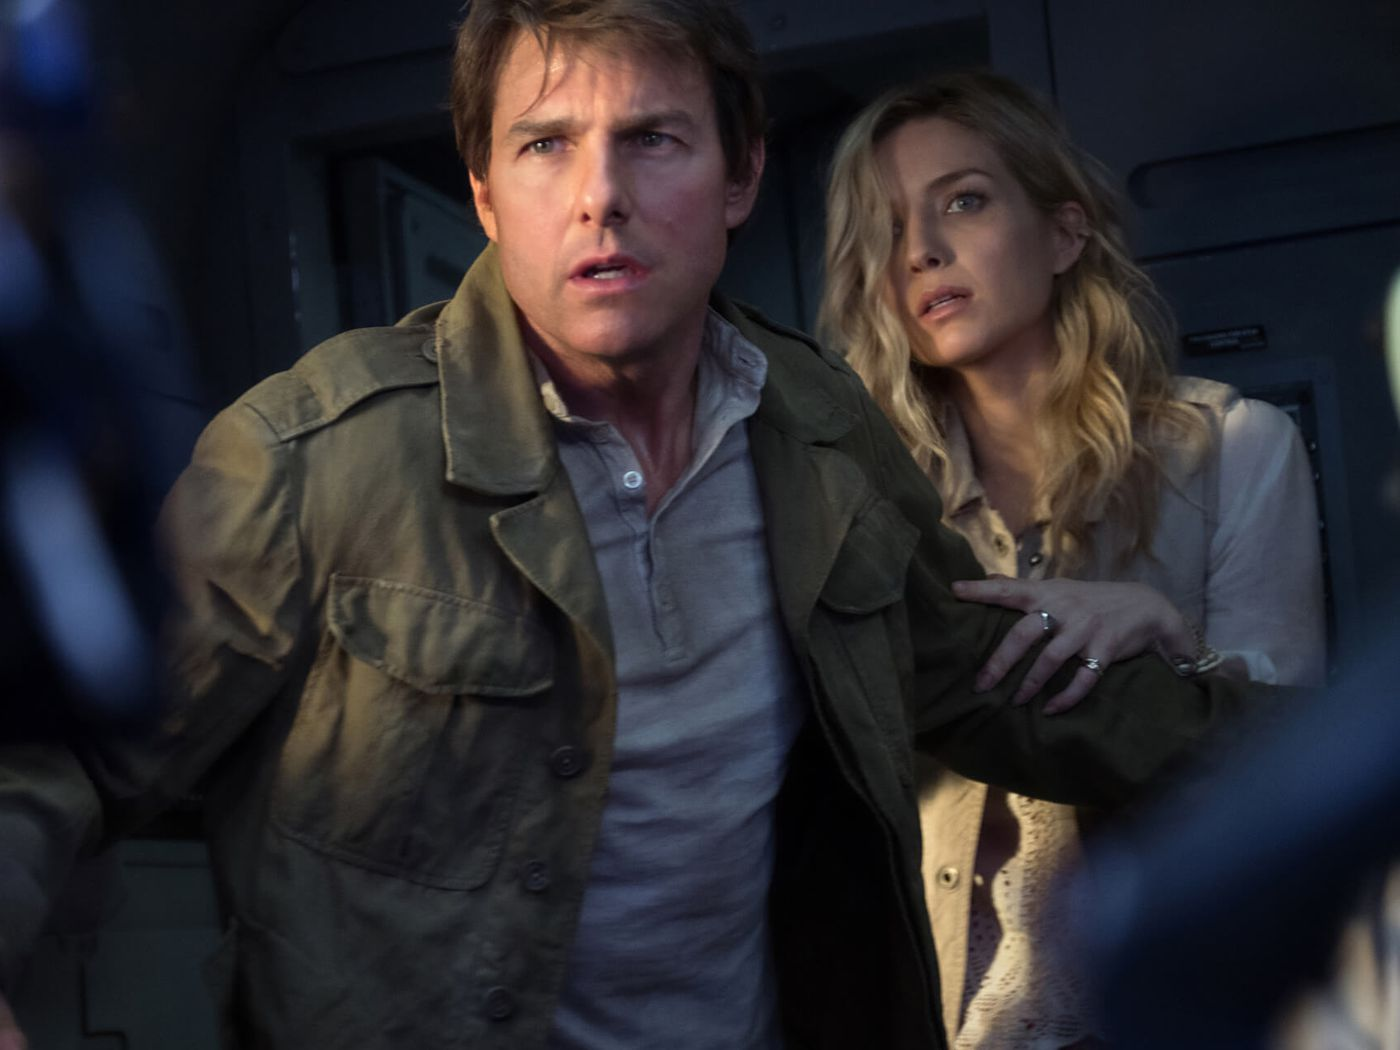 The Mummy Would Have Been So Much Better If Tom Cruise Were The Villain The Verge Show guide for how to keep a mummy. tom cruise were the villain